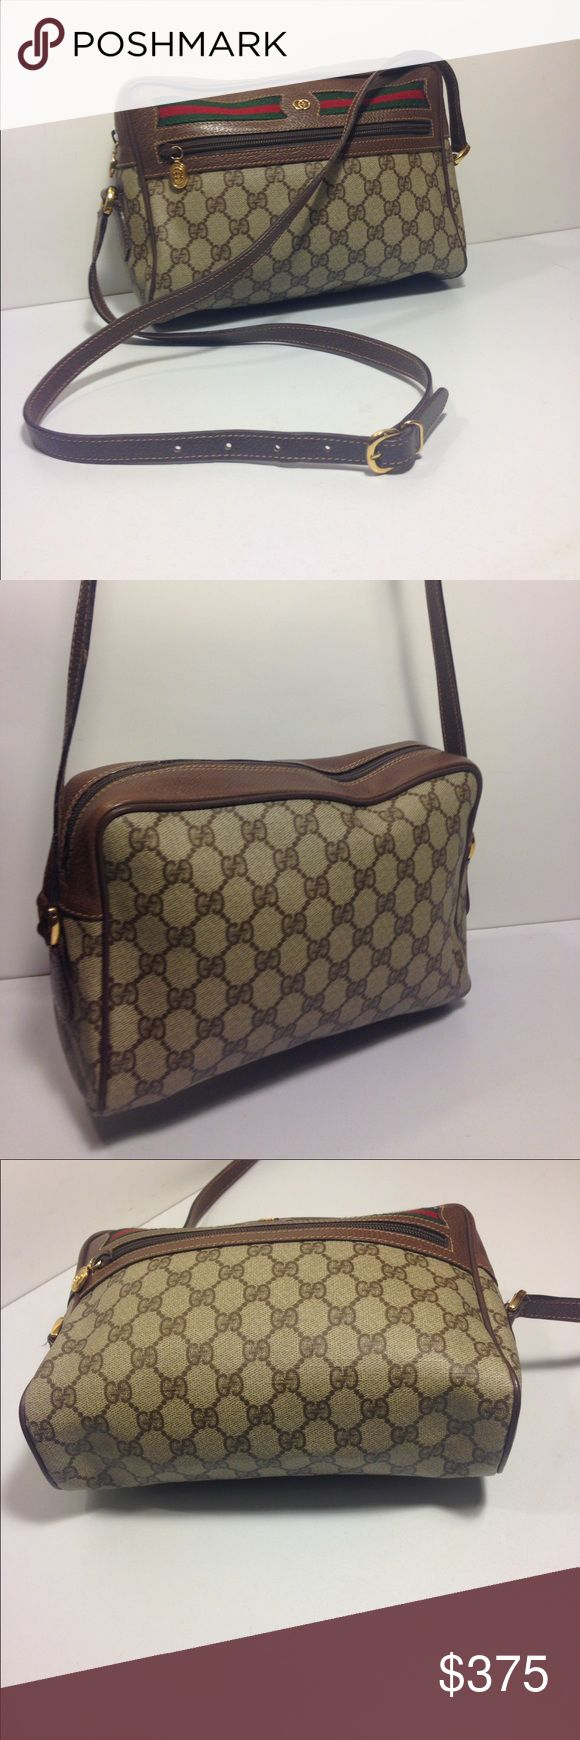 """Gucci """"GG"""" Sherry Line Cross Body Bag Gucci """"GG"""" Sherry Line Cross Body Bag ... Serial # 001.113.6472 ... Color: Brown ... Material: PVC / Leather ... Length: 10"""" ... Height: 7"""" ... Width: 3"""" ... Strap drop: 18"""" ...  Features: Zippered Exterior pocket ... Top zippered closure ... Zippered interior pocket ... Adjustable shoulder strap ... Gold tone hardware ... Condition: Normal sign of use ... interior lining scuff ... Excellent condition ... Guaranteed Authentic. Gucci Bags Crossbody Bags"""